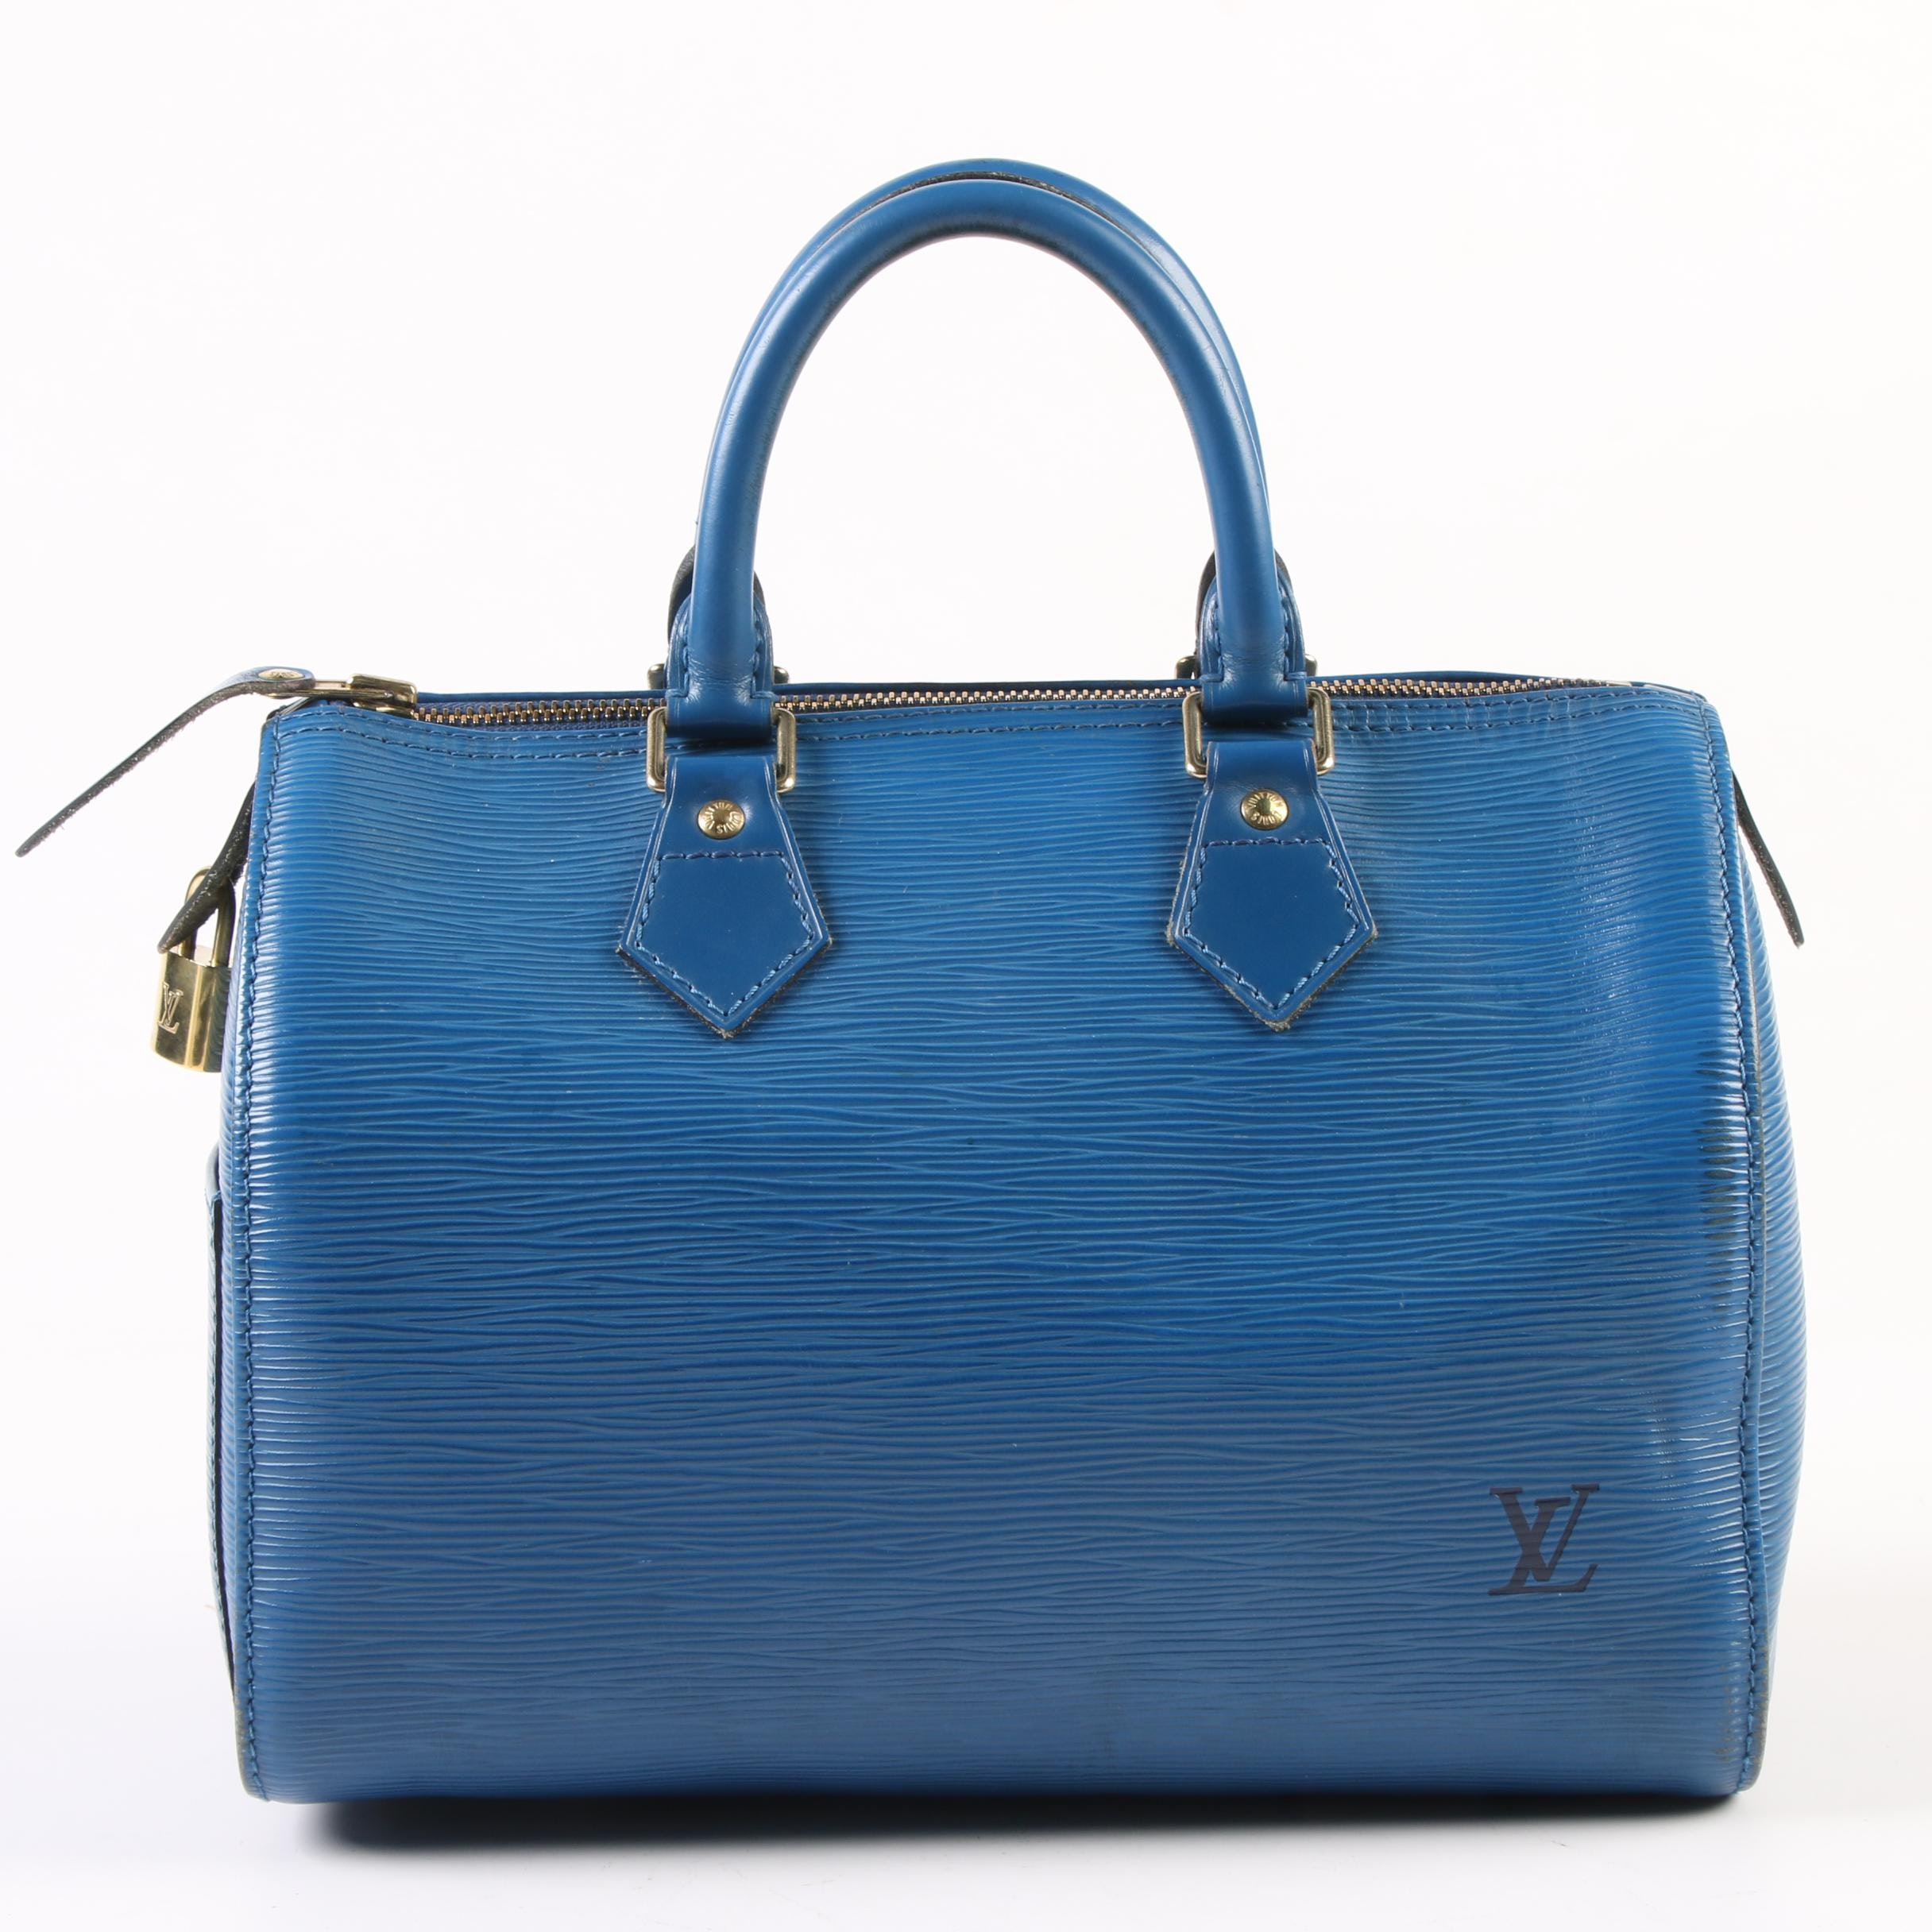 Louis Vuitton Paris Speedy 25 in Toledo Blue Epi Leather